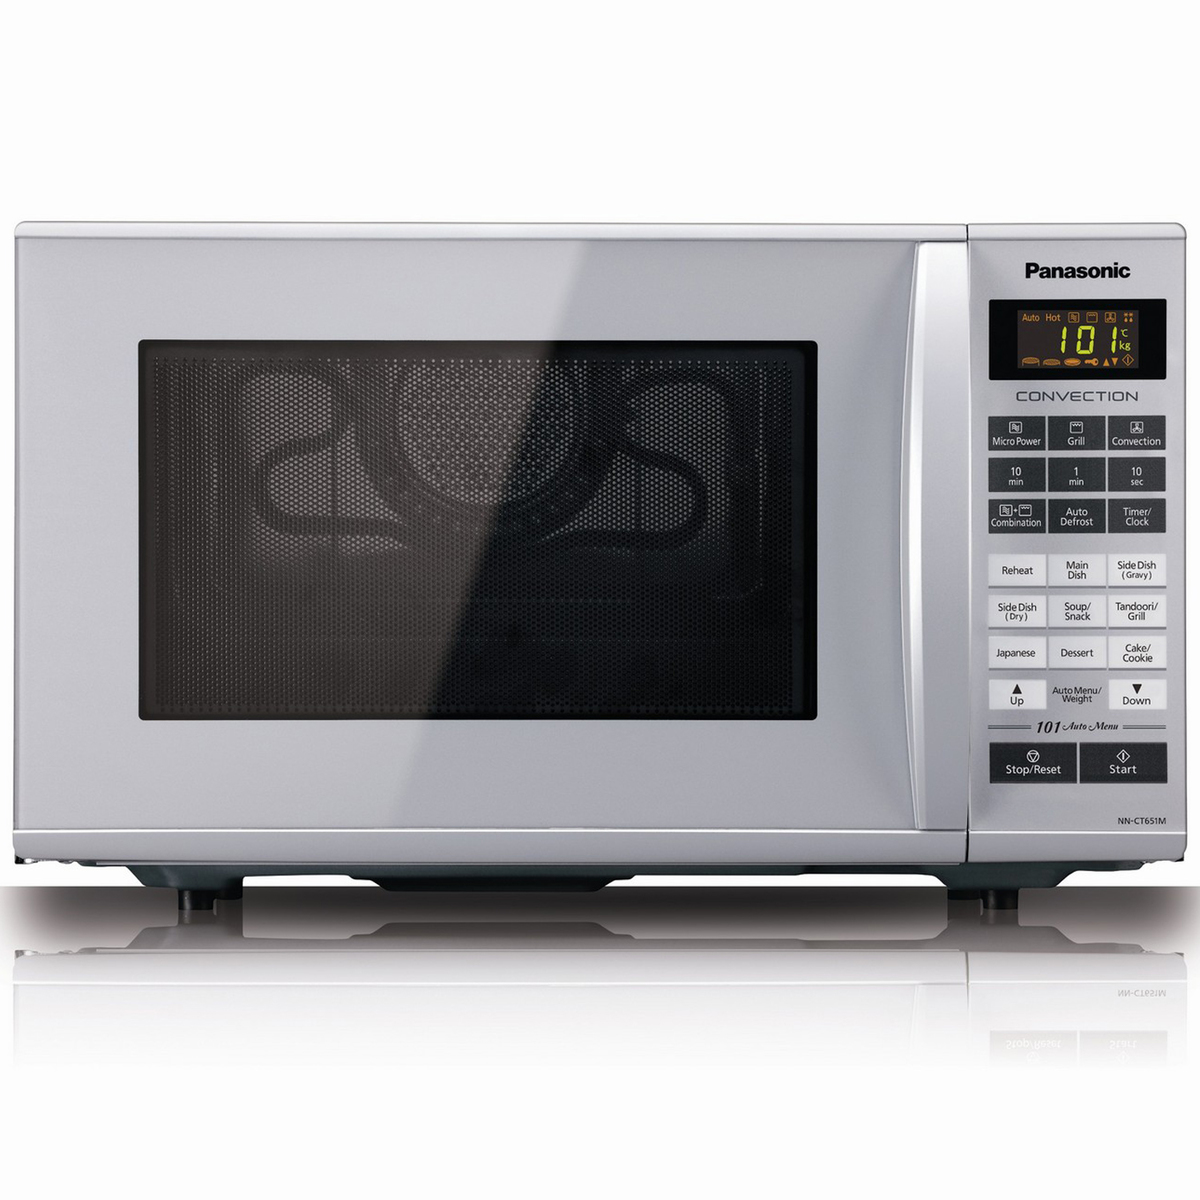 Buy Panasonic Microwave Oven with Grill NNCT651 27 Ltr